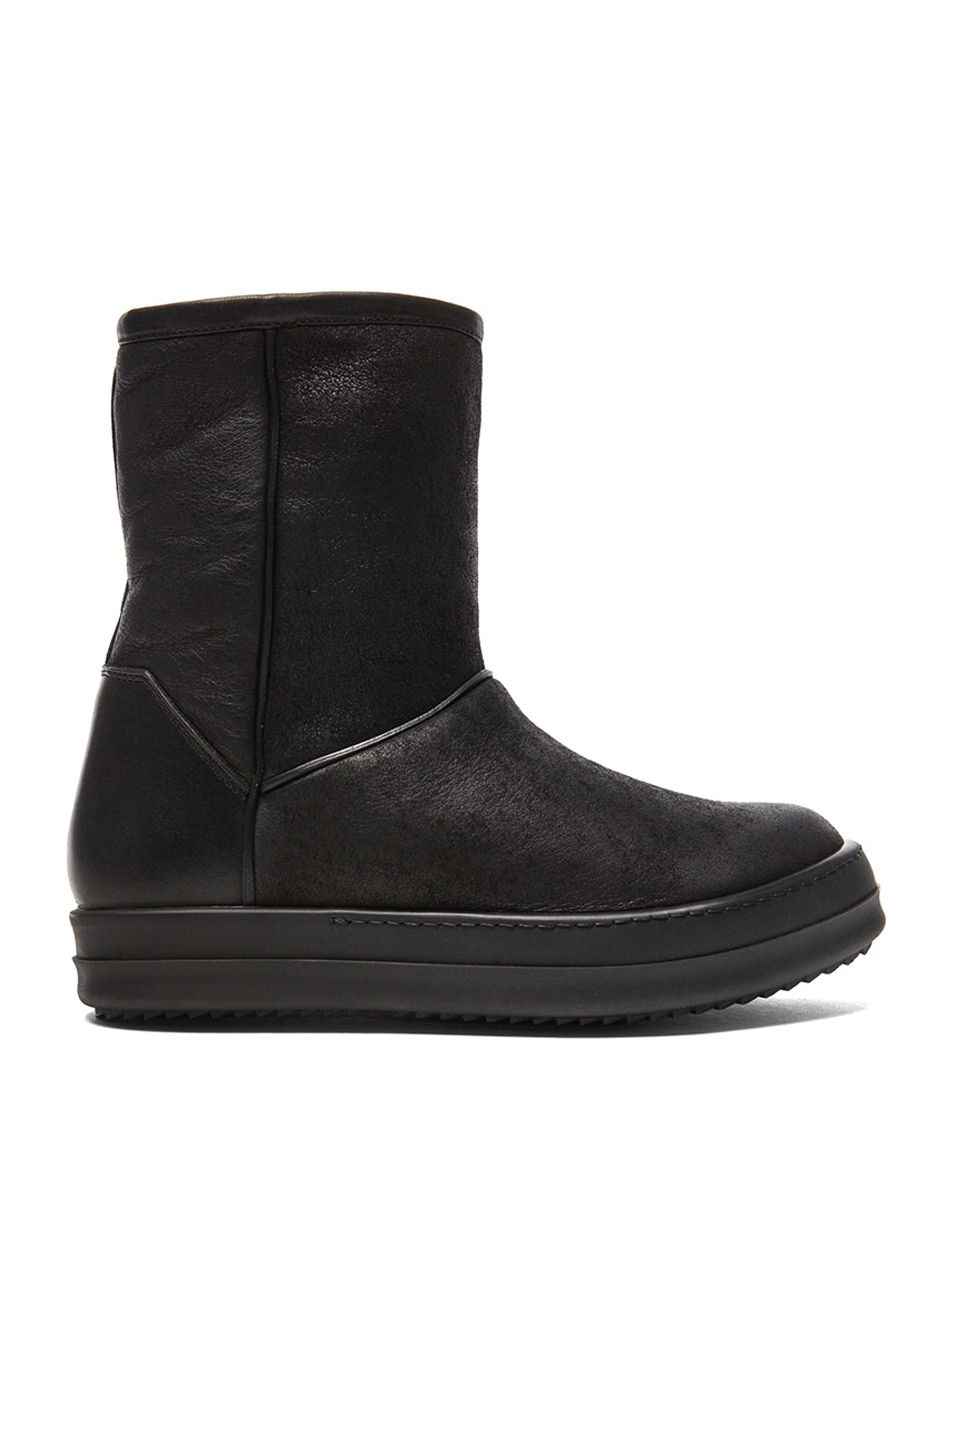 Image 1 of Rick Owens Shearling Ankle Boots in Black